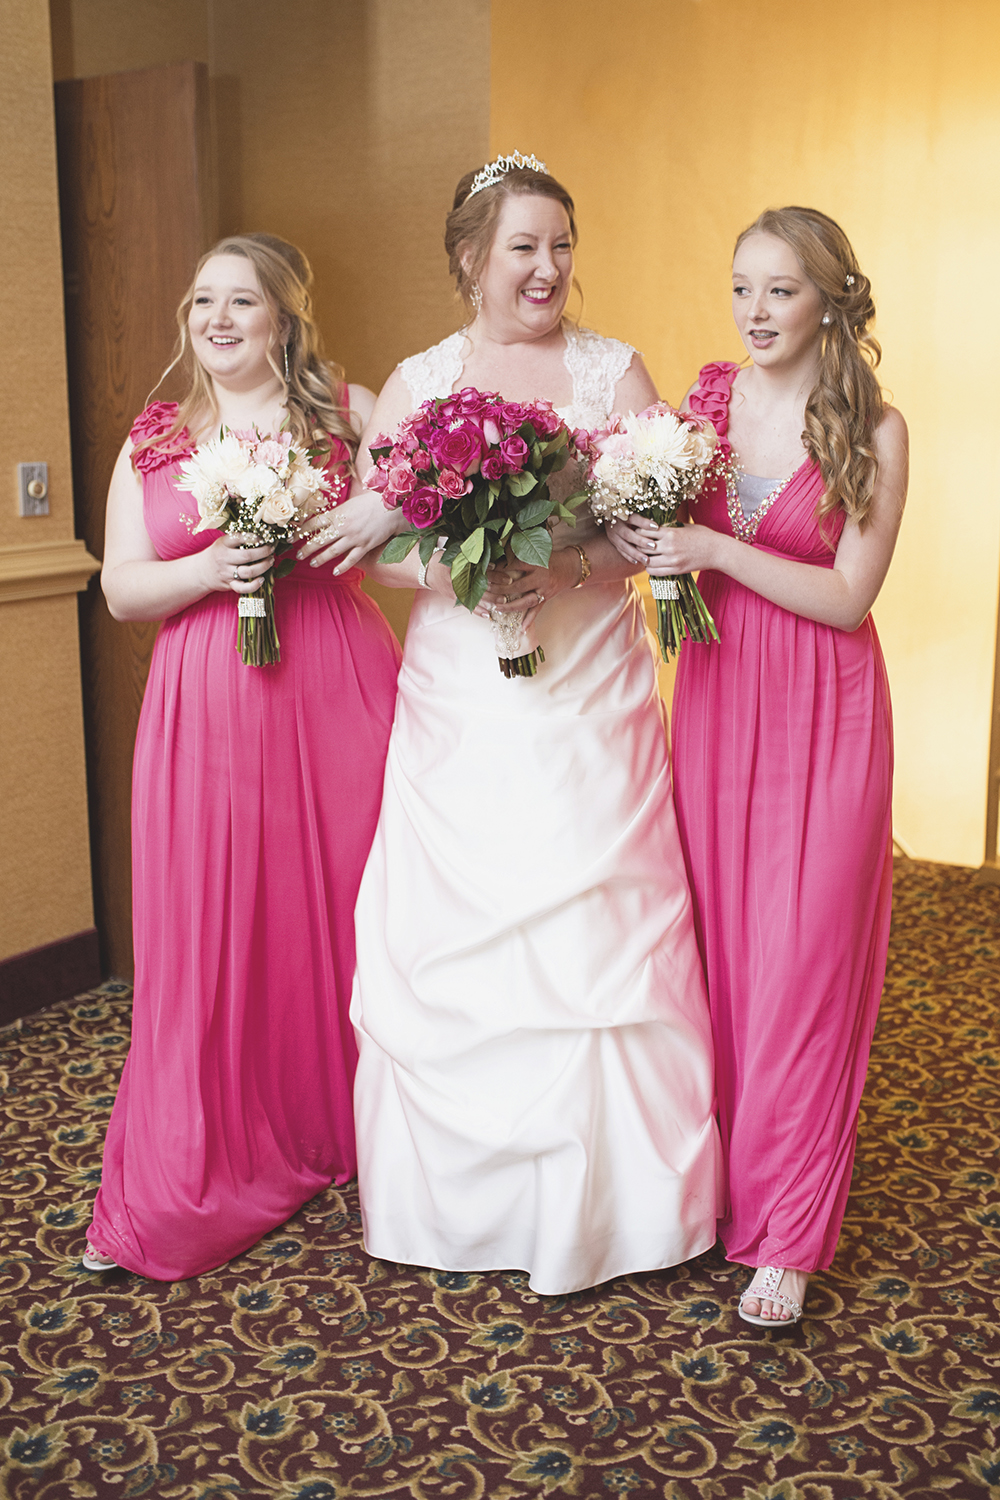 Bride walking down the aisle with her daughters | Pink wedding colors